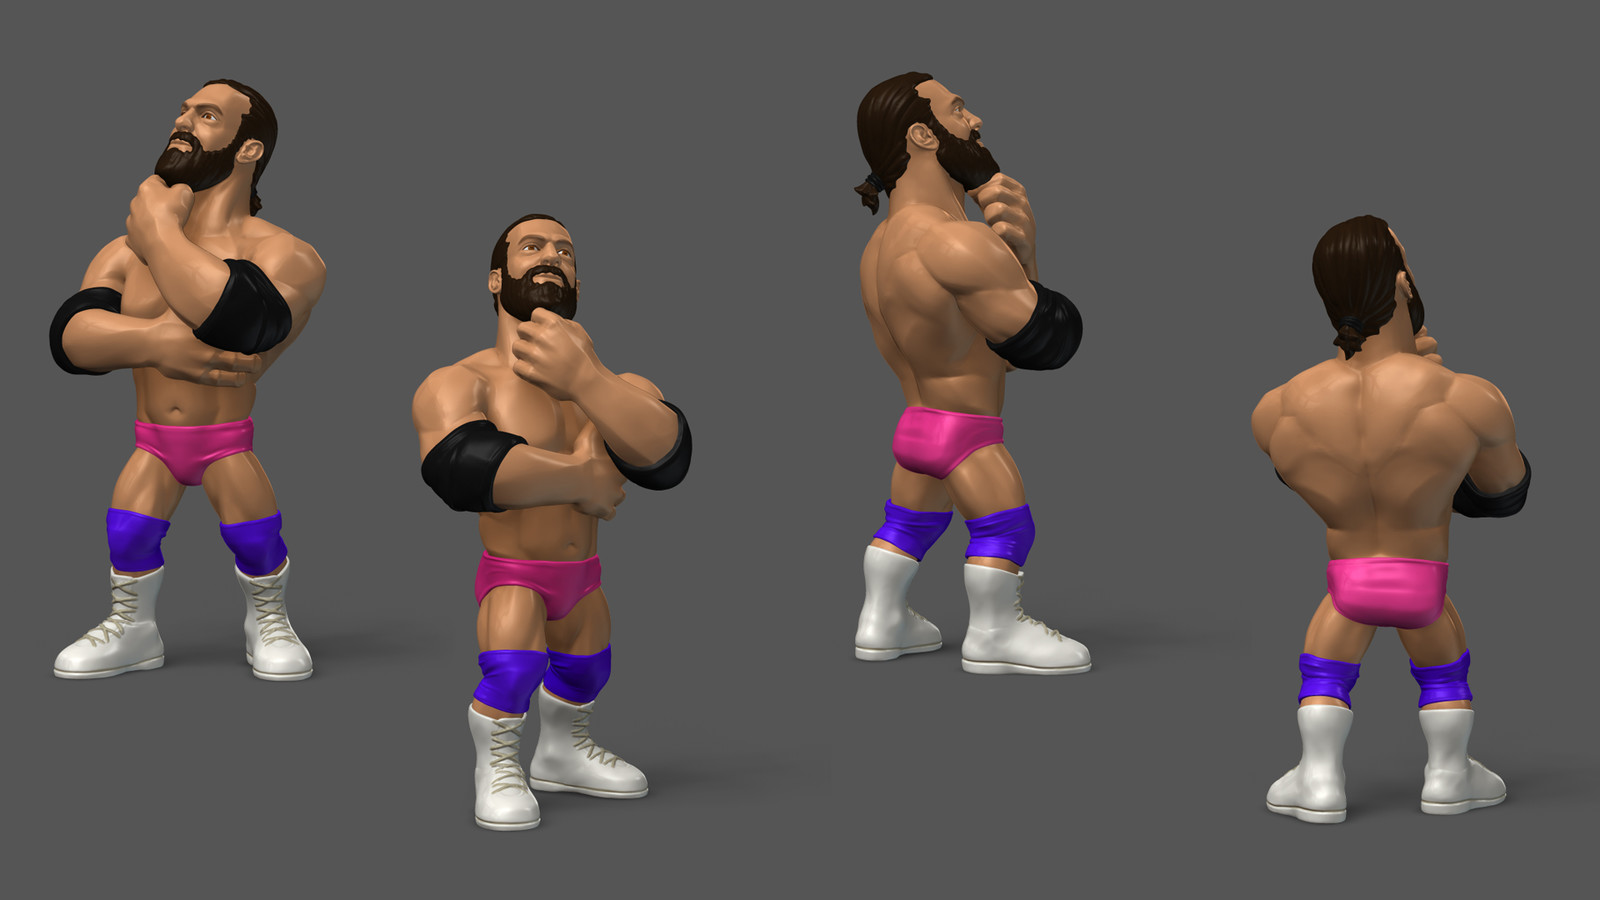 Damien Sandow - Toy Prototype